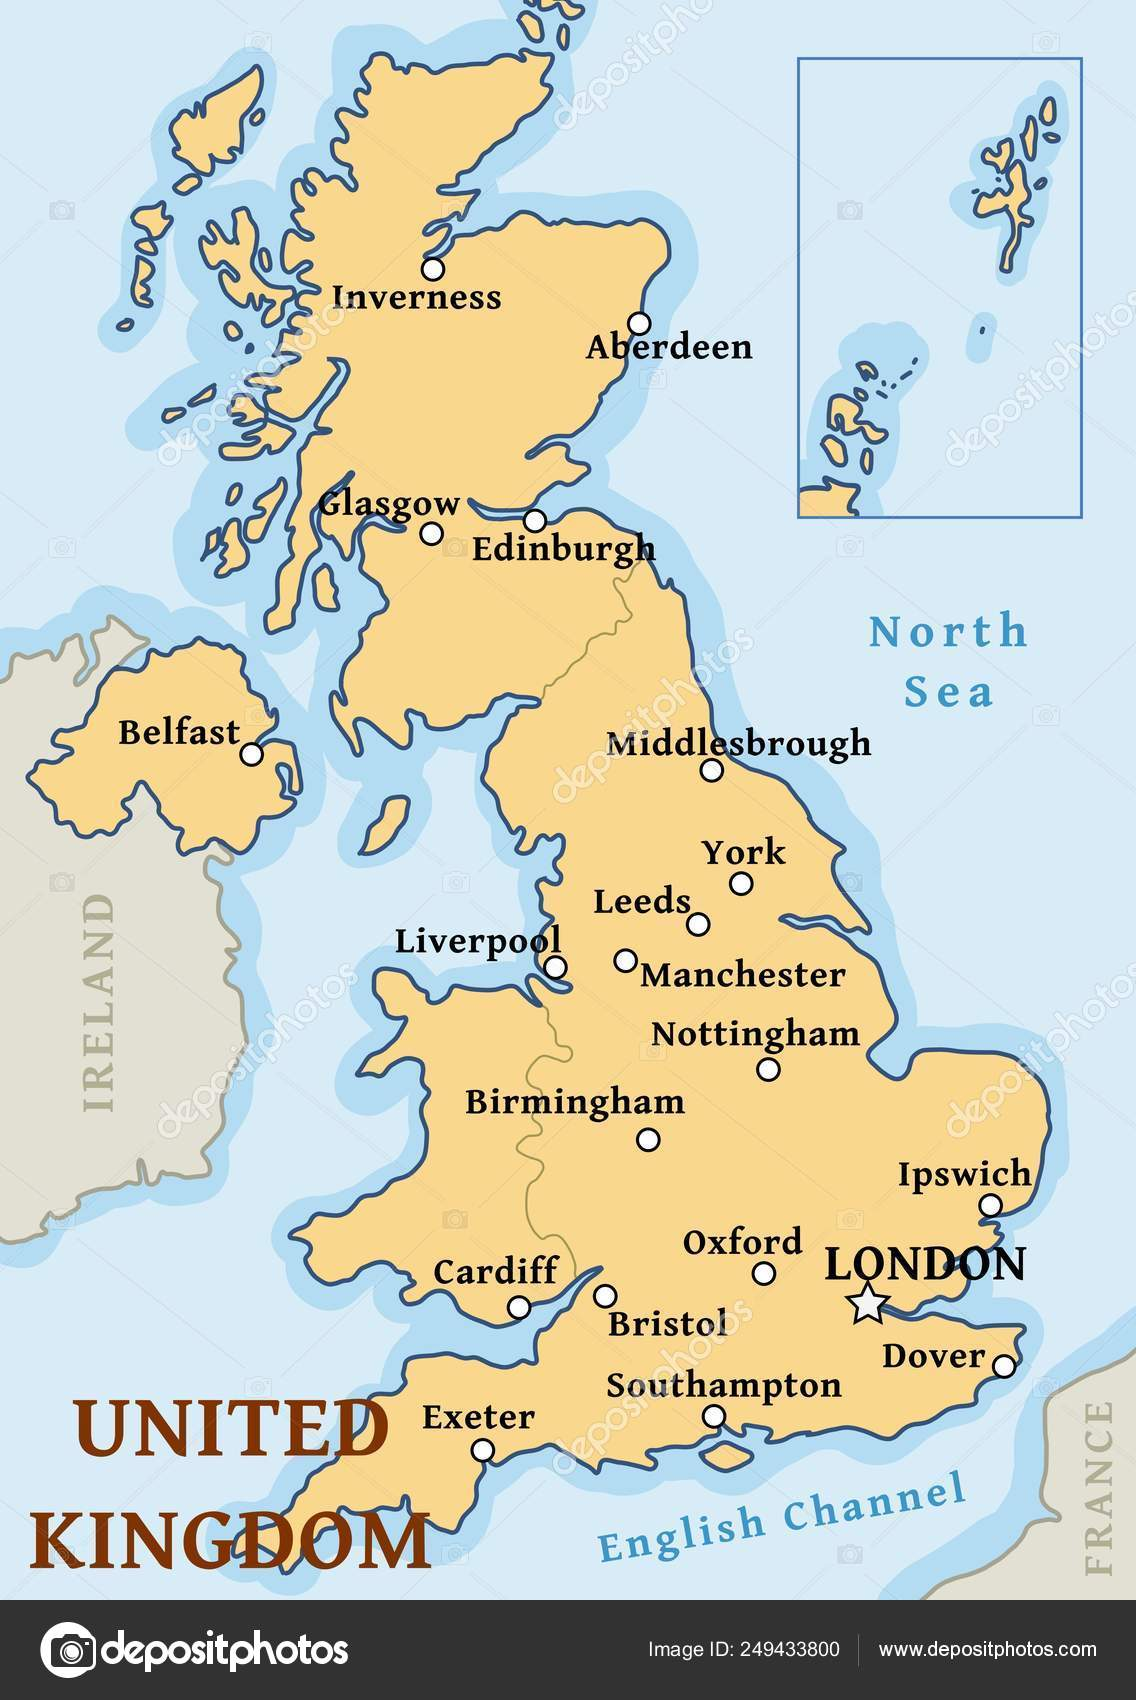 Map Of The Uk Cities.Uk Cities Map Stock Vector C Tupungato 249433800